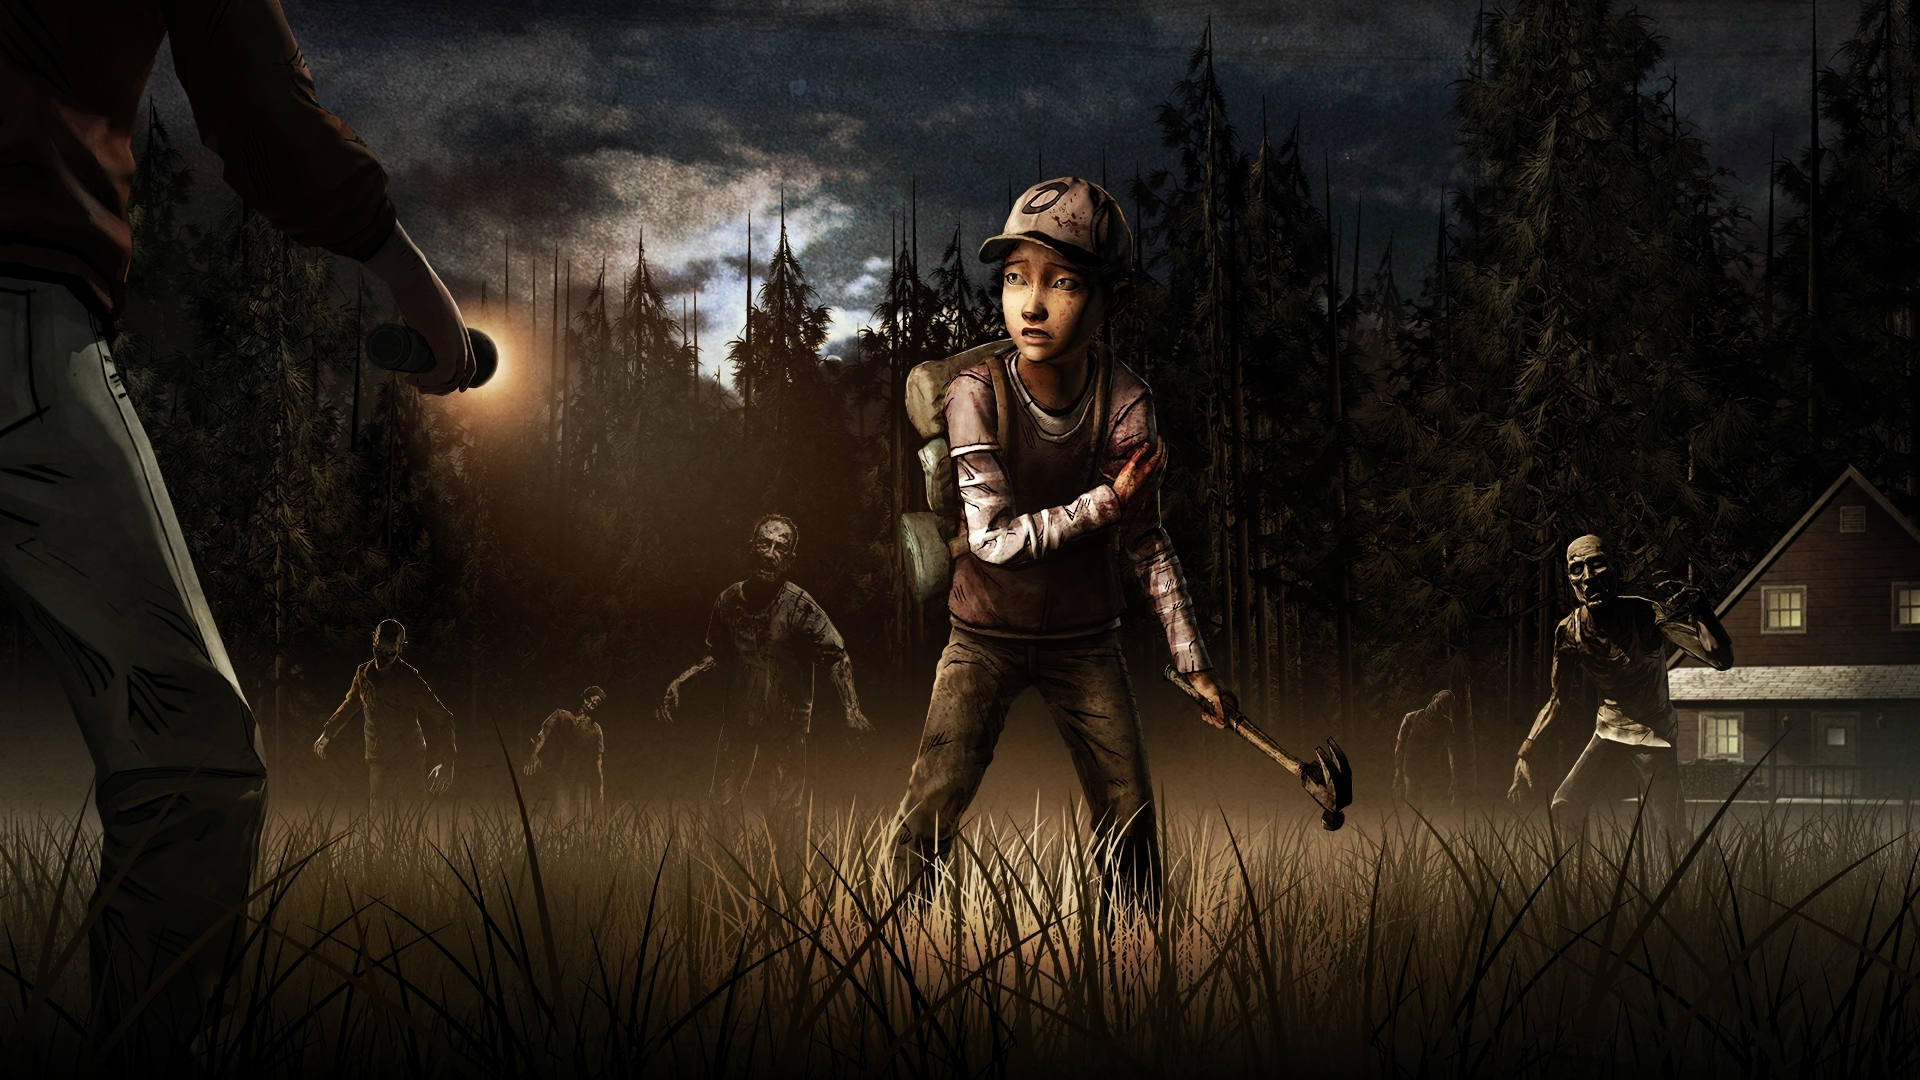 the walking dead: the game season 2 full hd fond d'écran and arrière